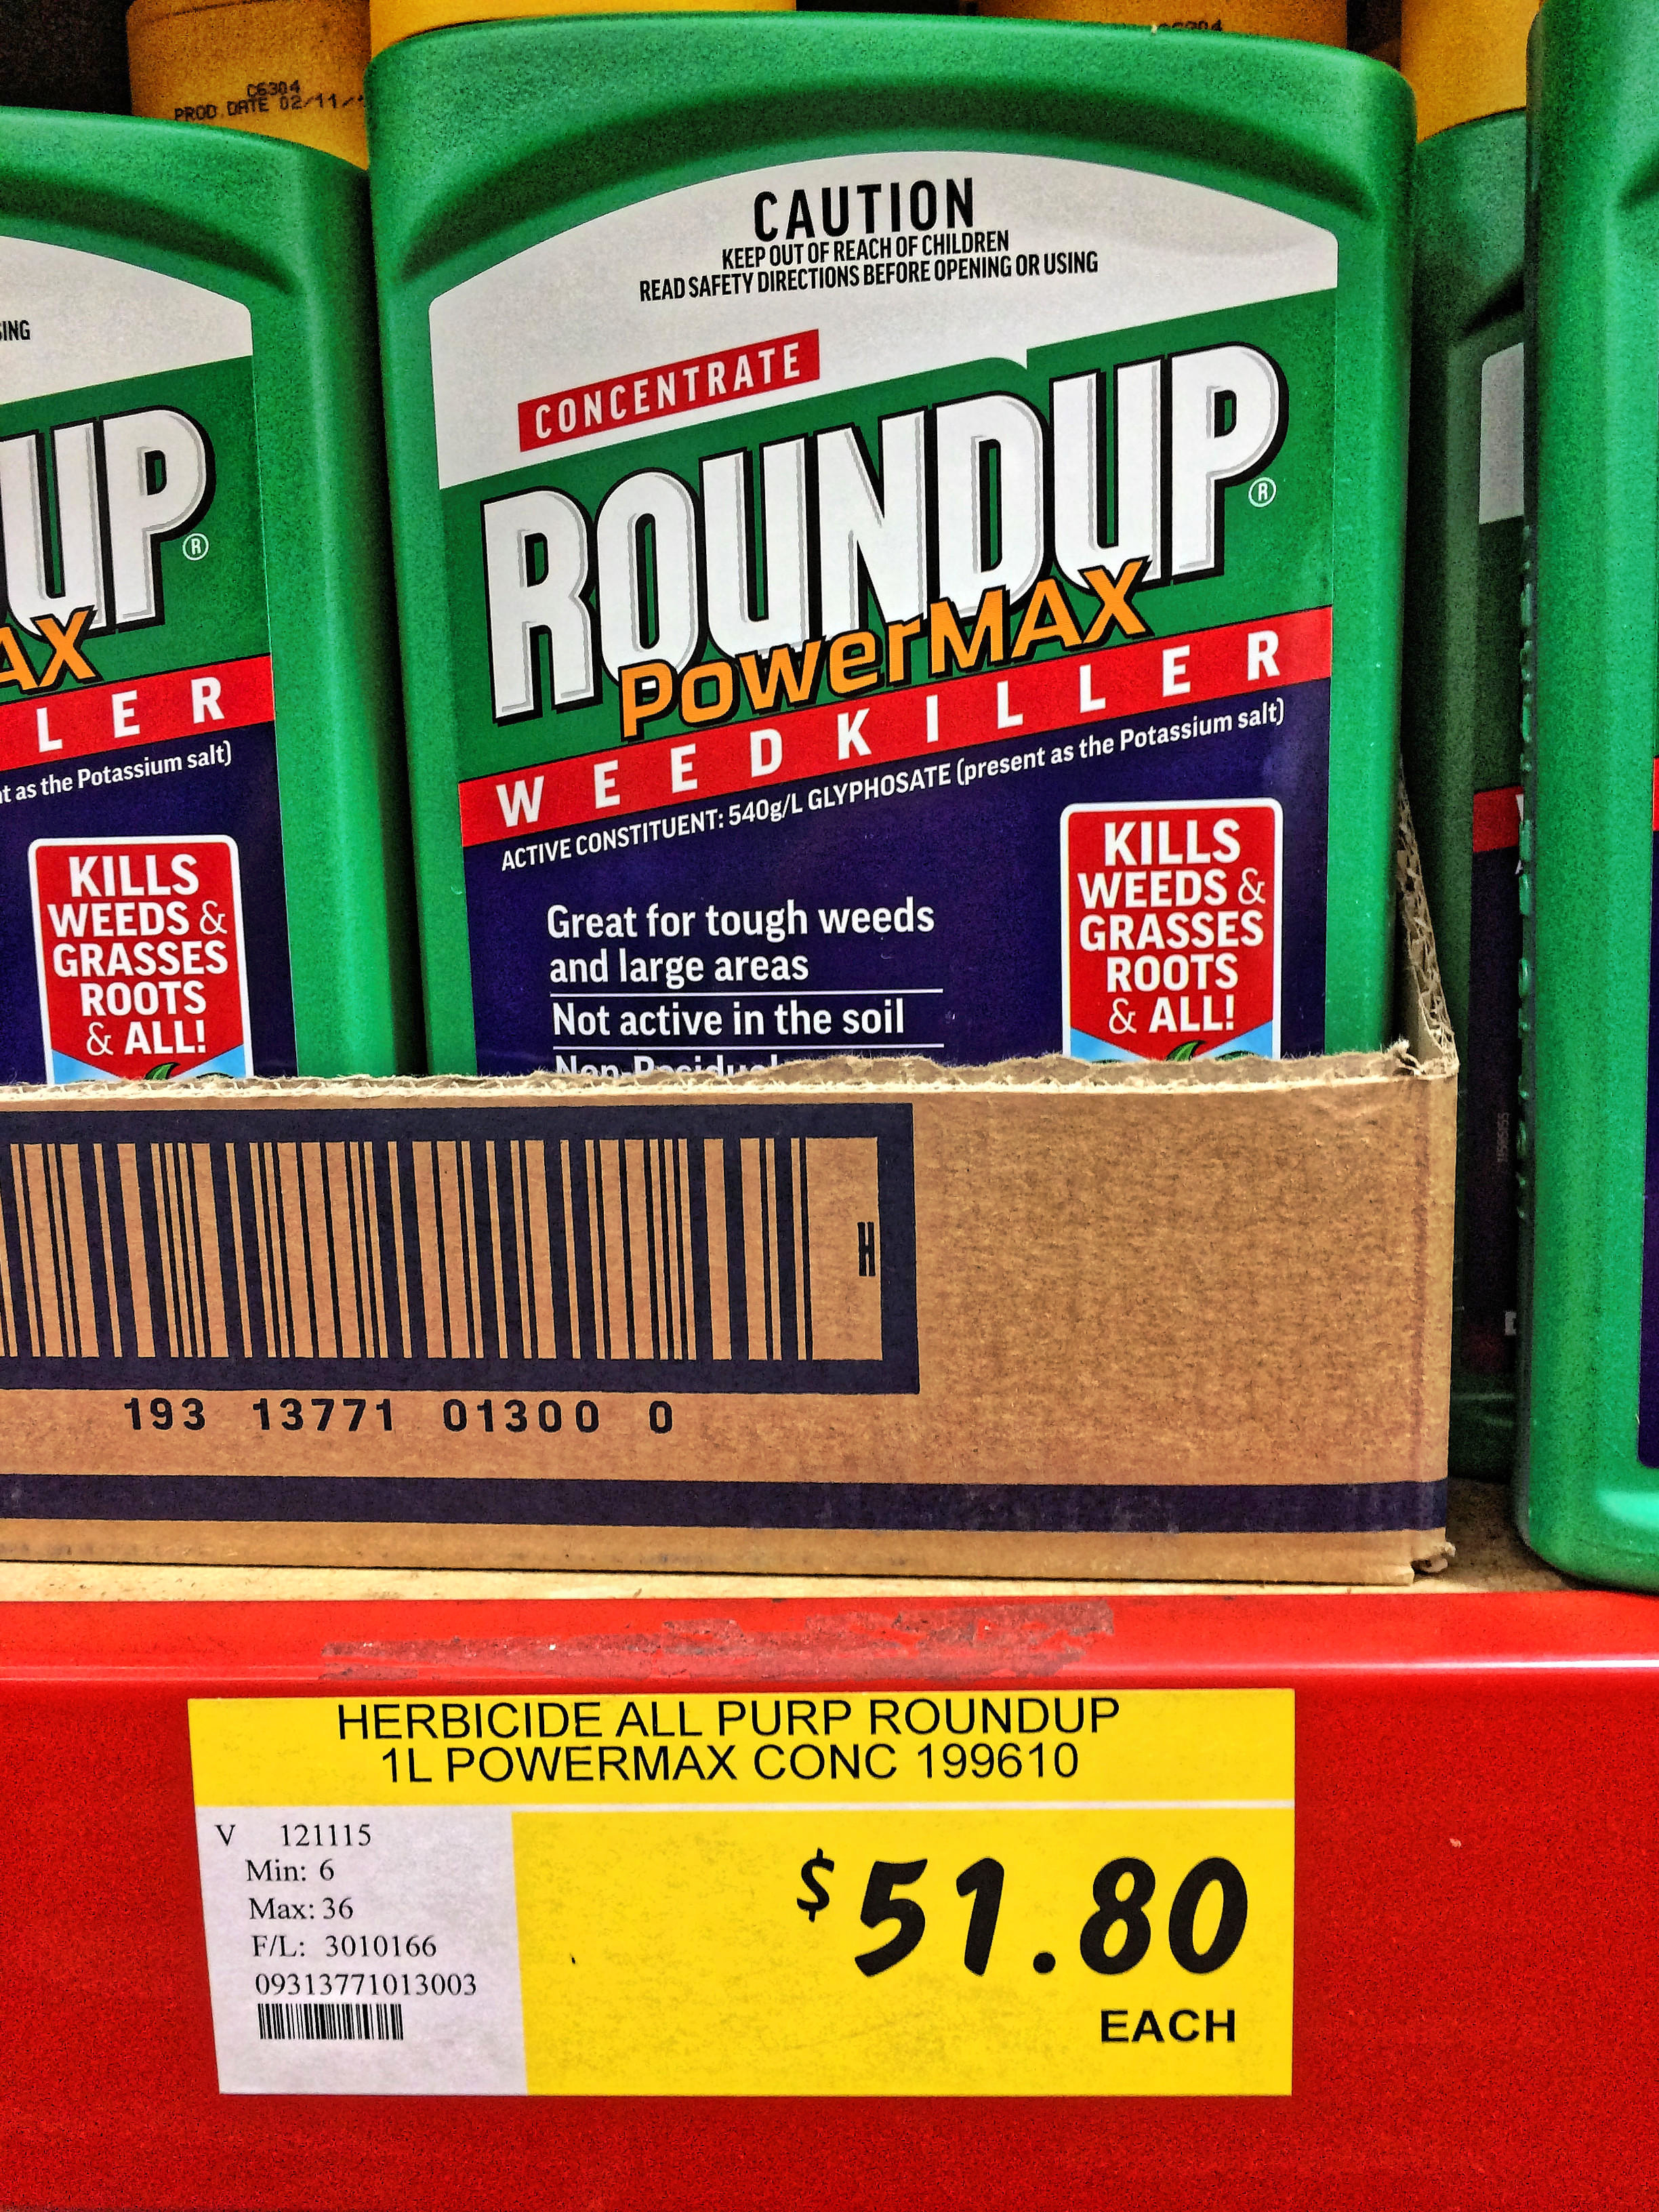 This should be Glyphosate-4.jpeg.  Is it missing?